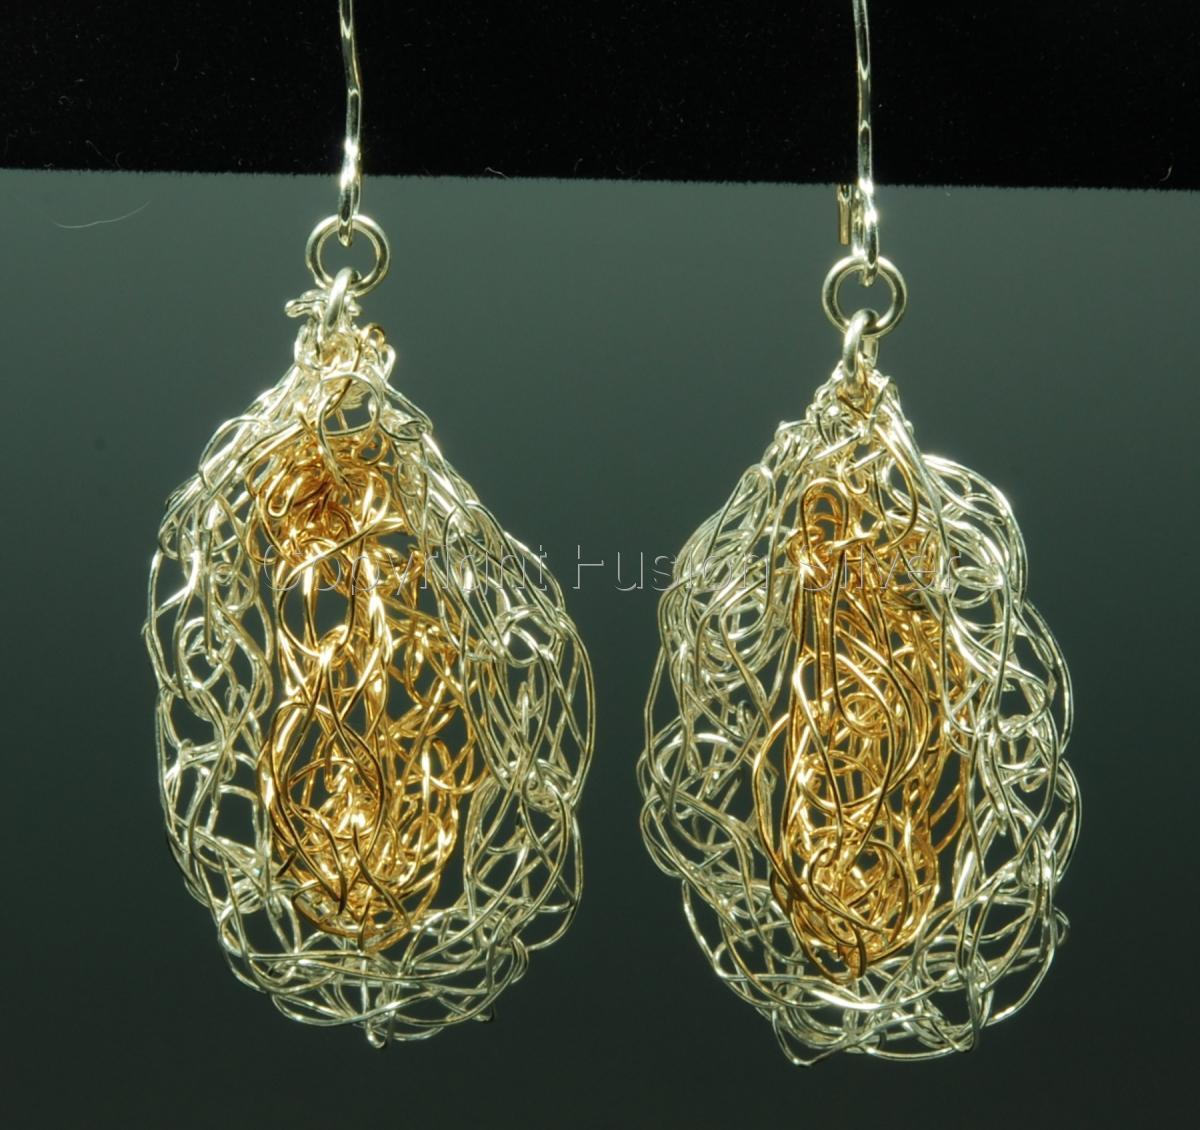 5 Star knitted 2 tone earrings (large view)